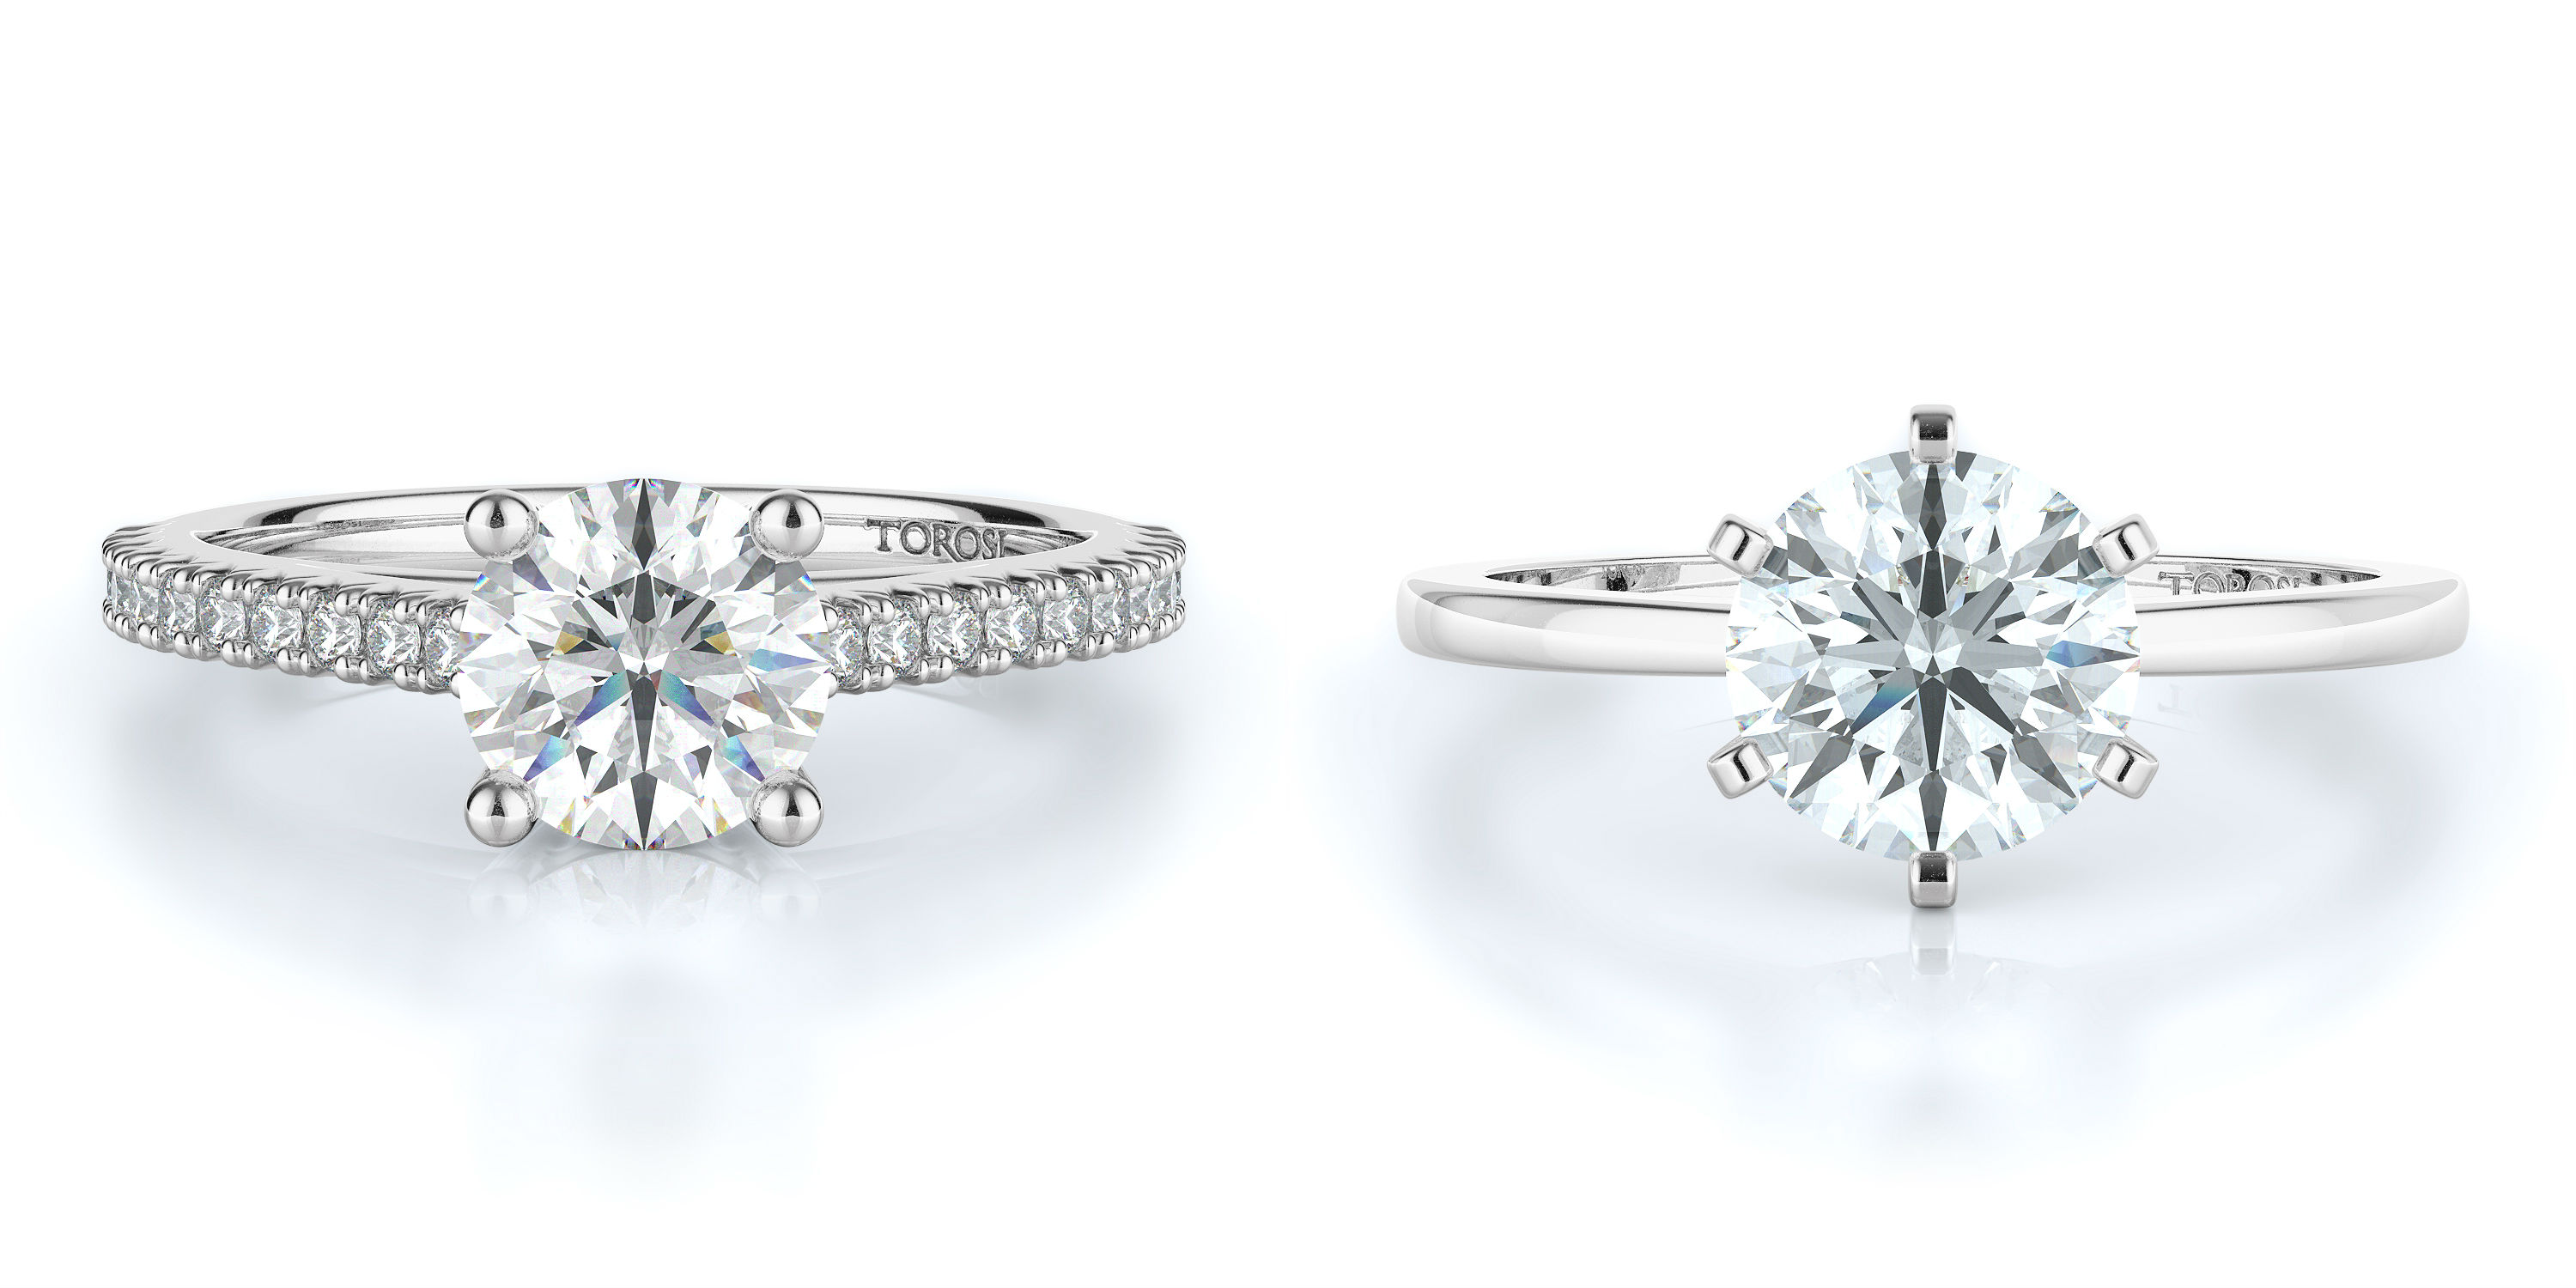 Round Cut Engagement Rings at Torosi